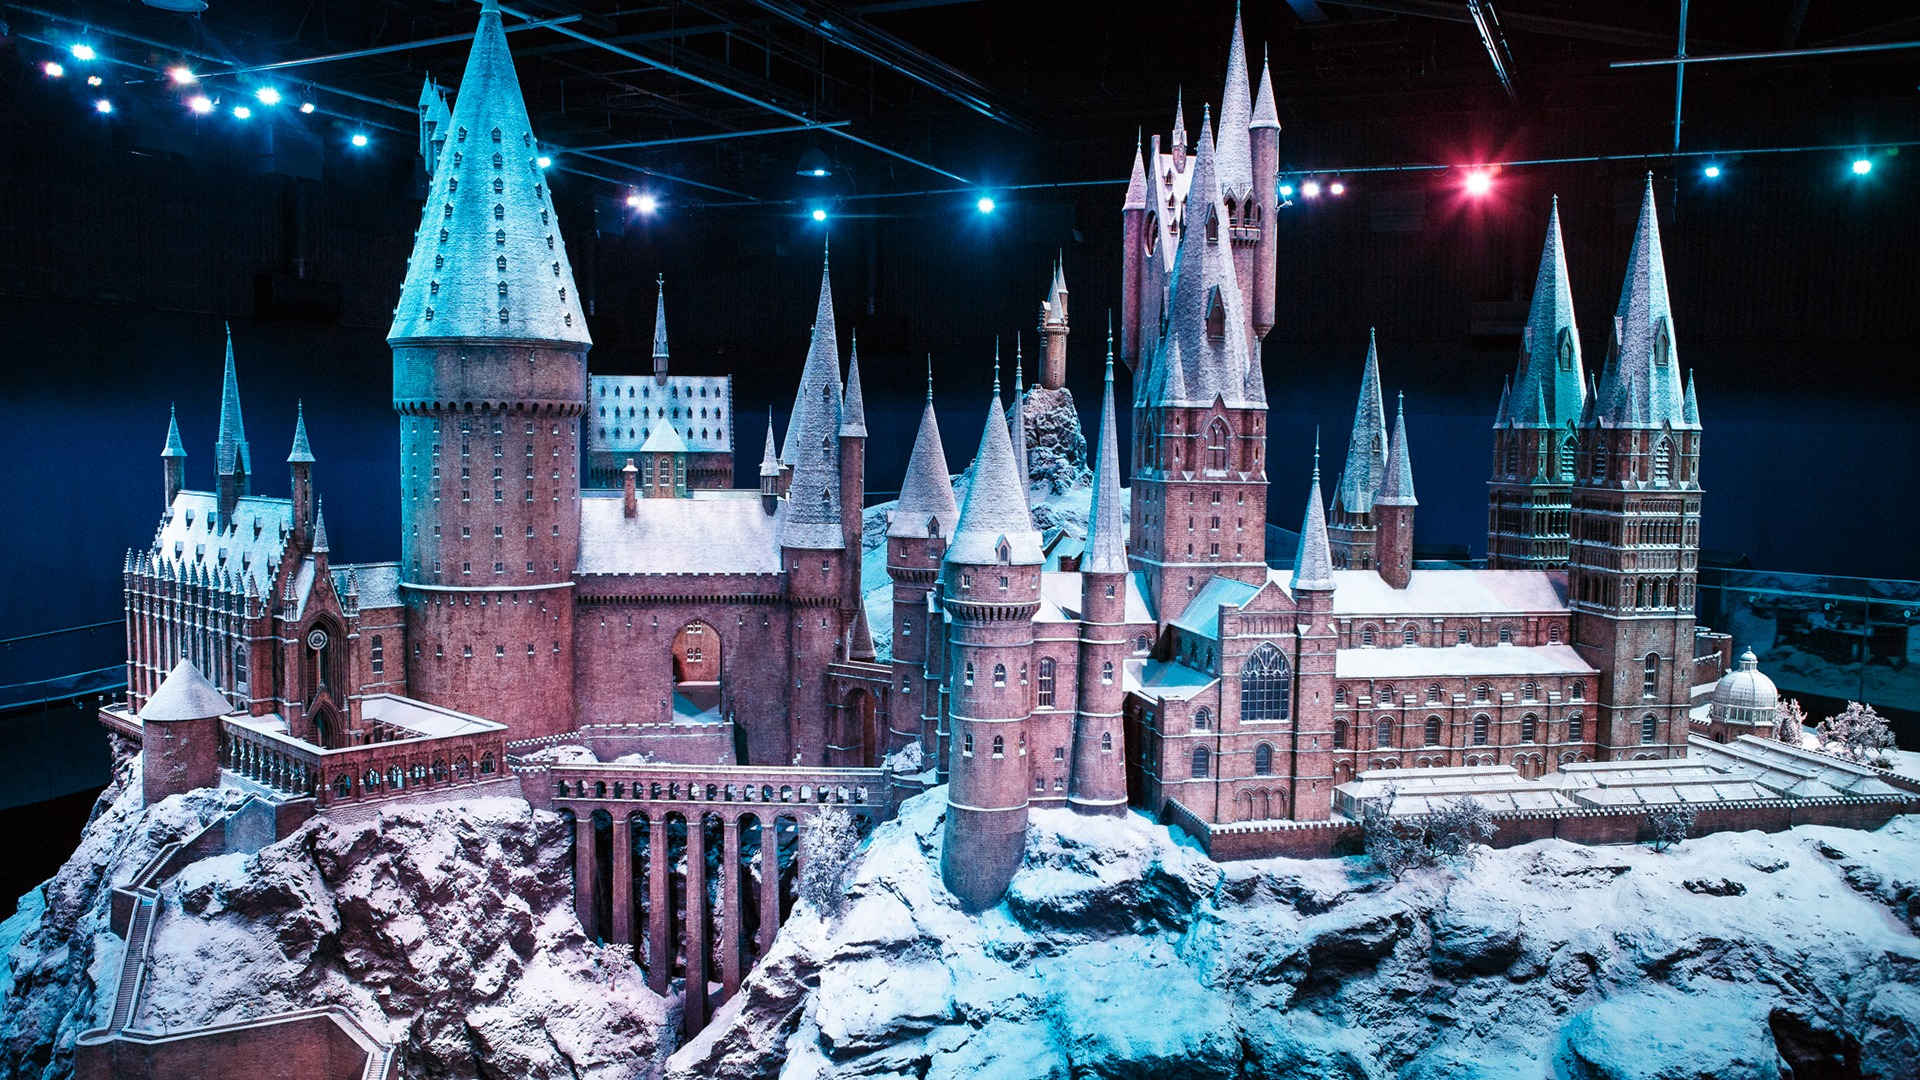 Video call background - Festive Hogwarts Castle